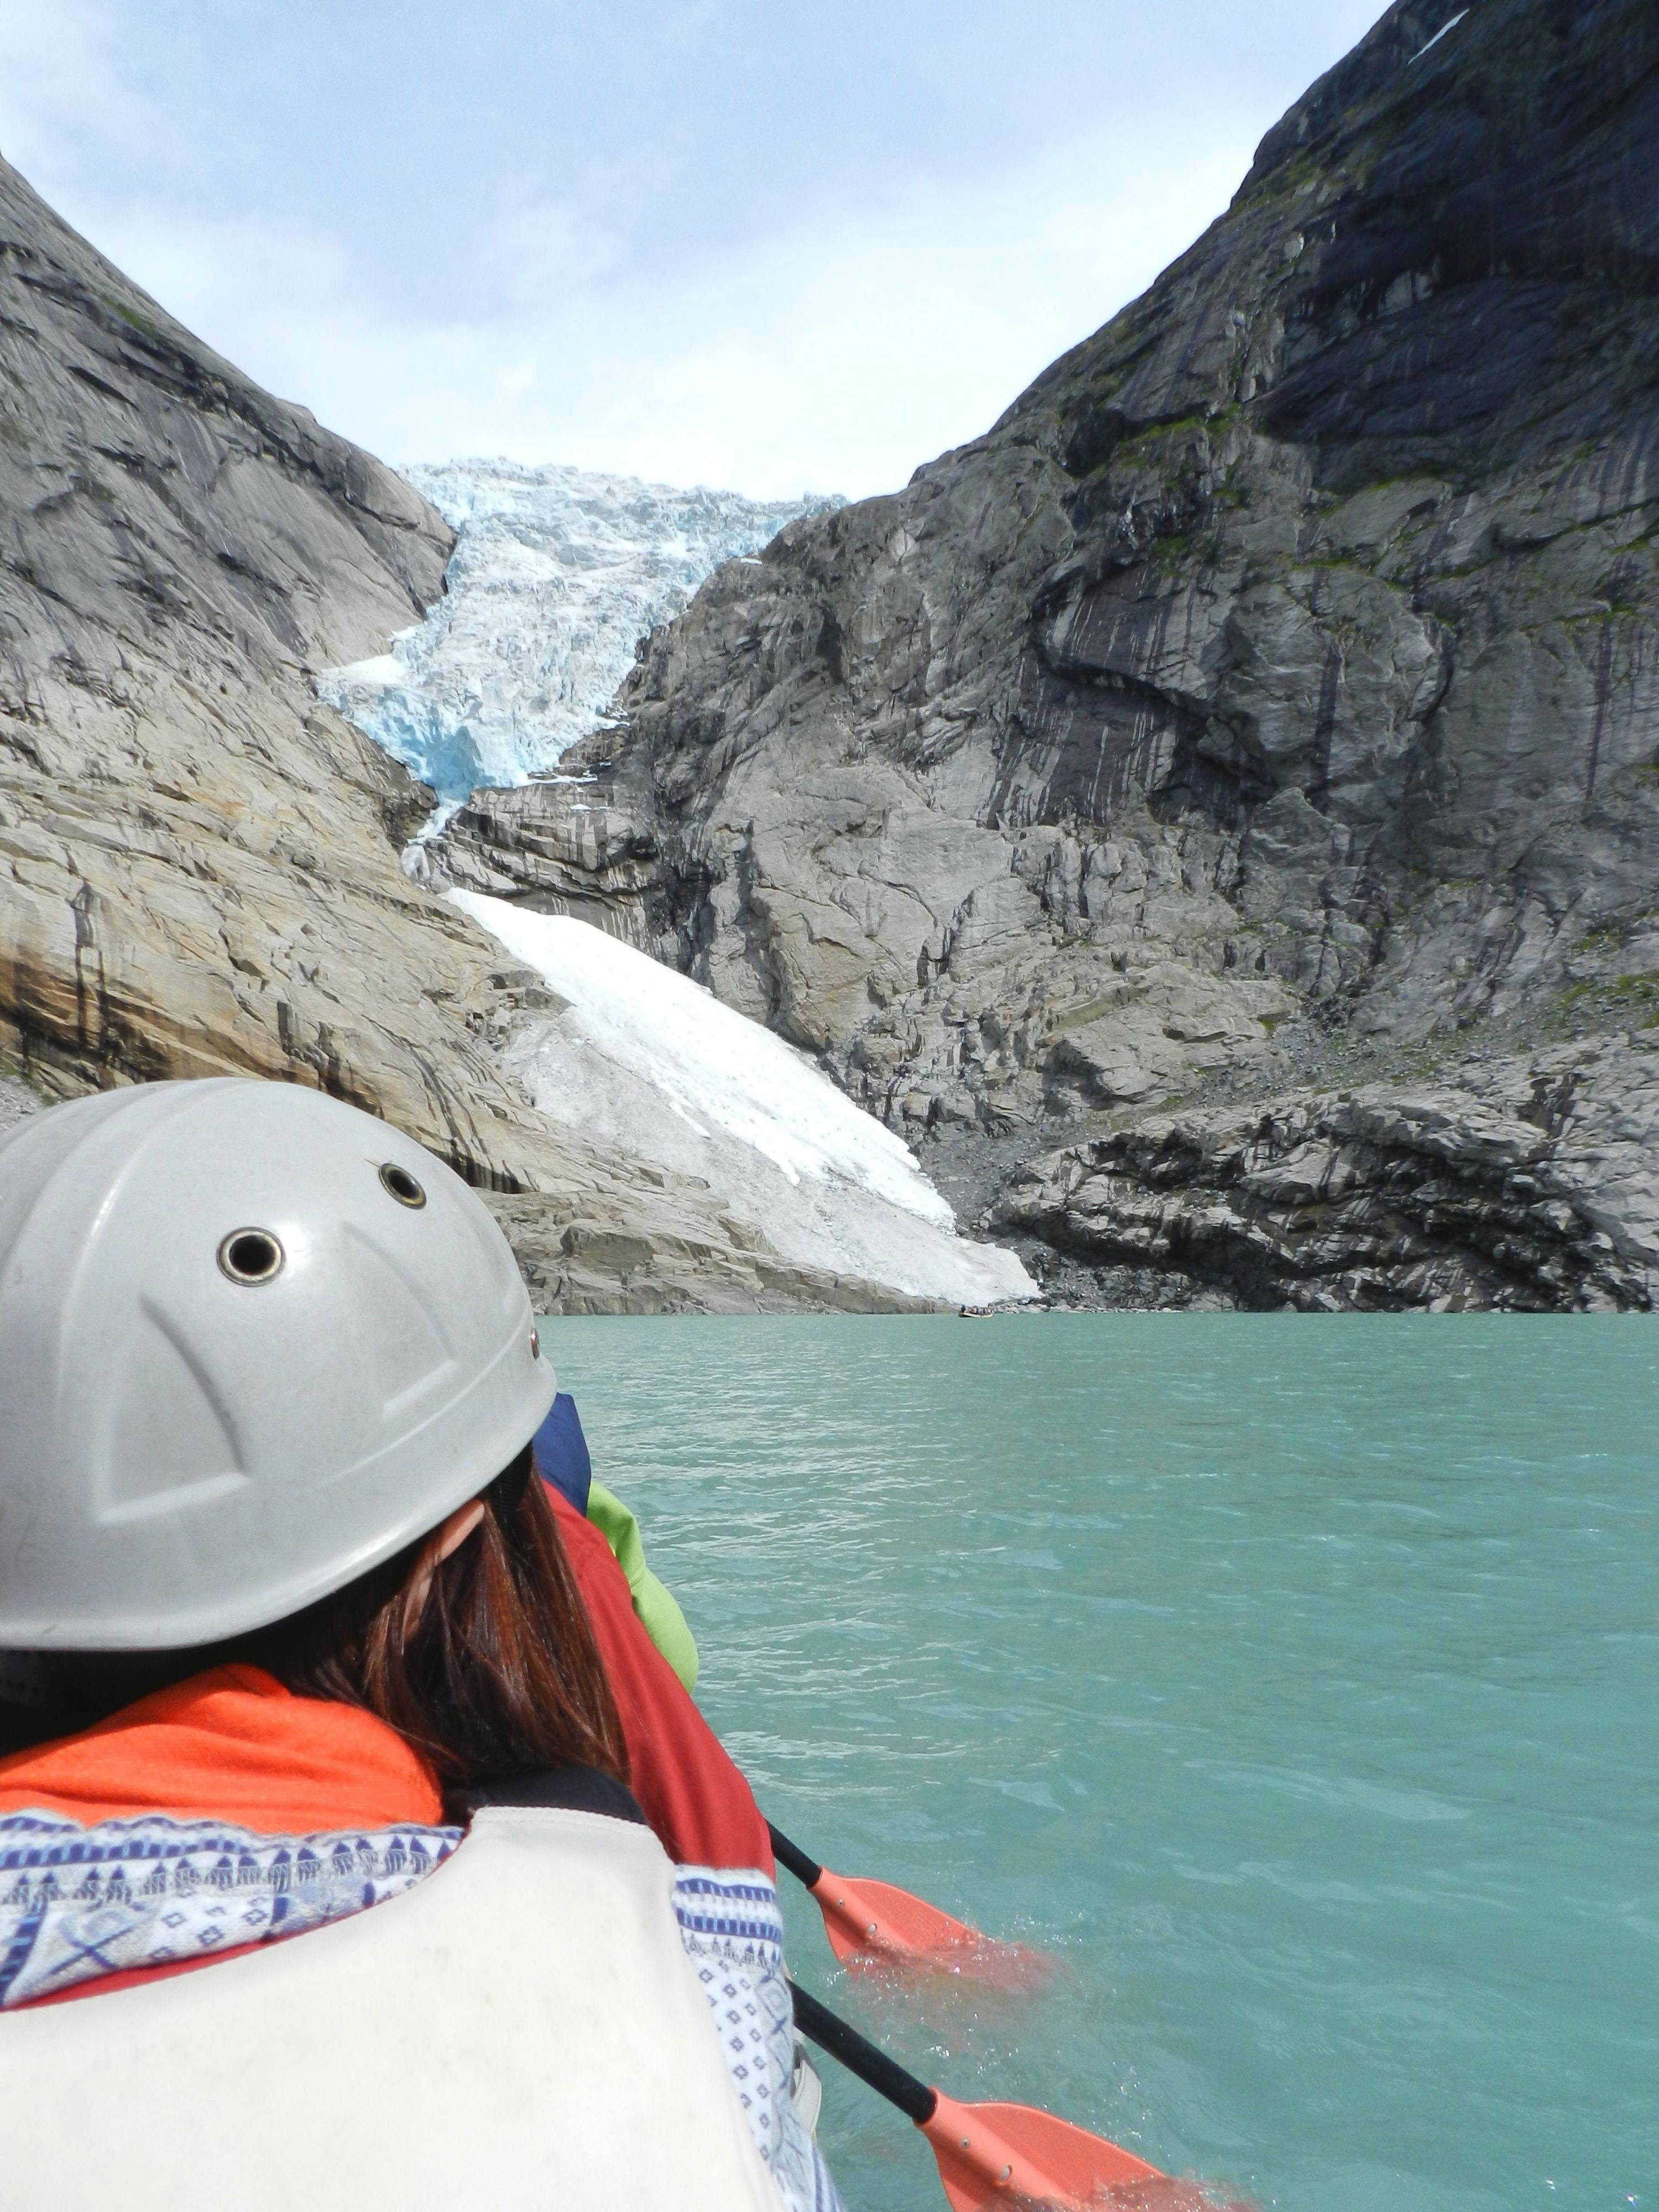 Learning firsthand about climate change as we paddle up to the receding Briksdal glacier.